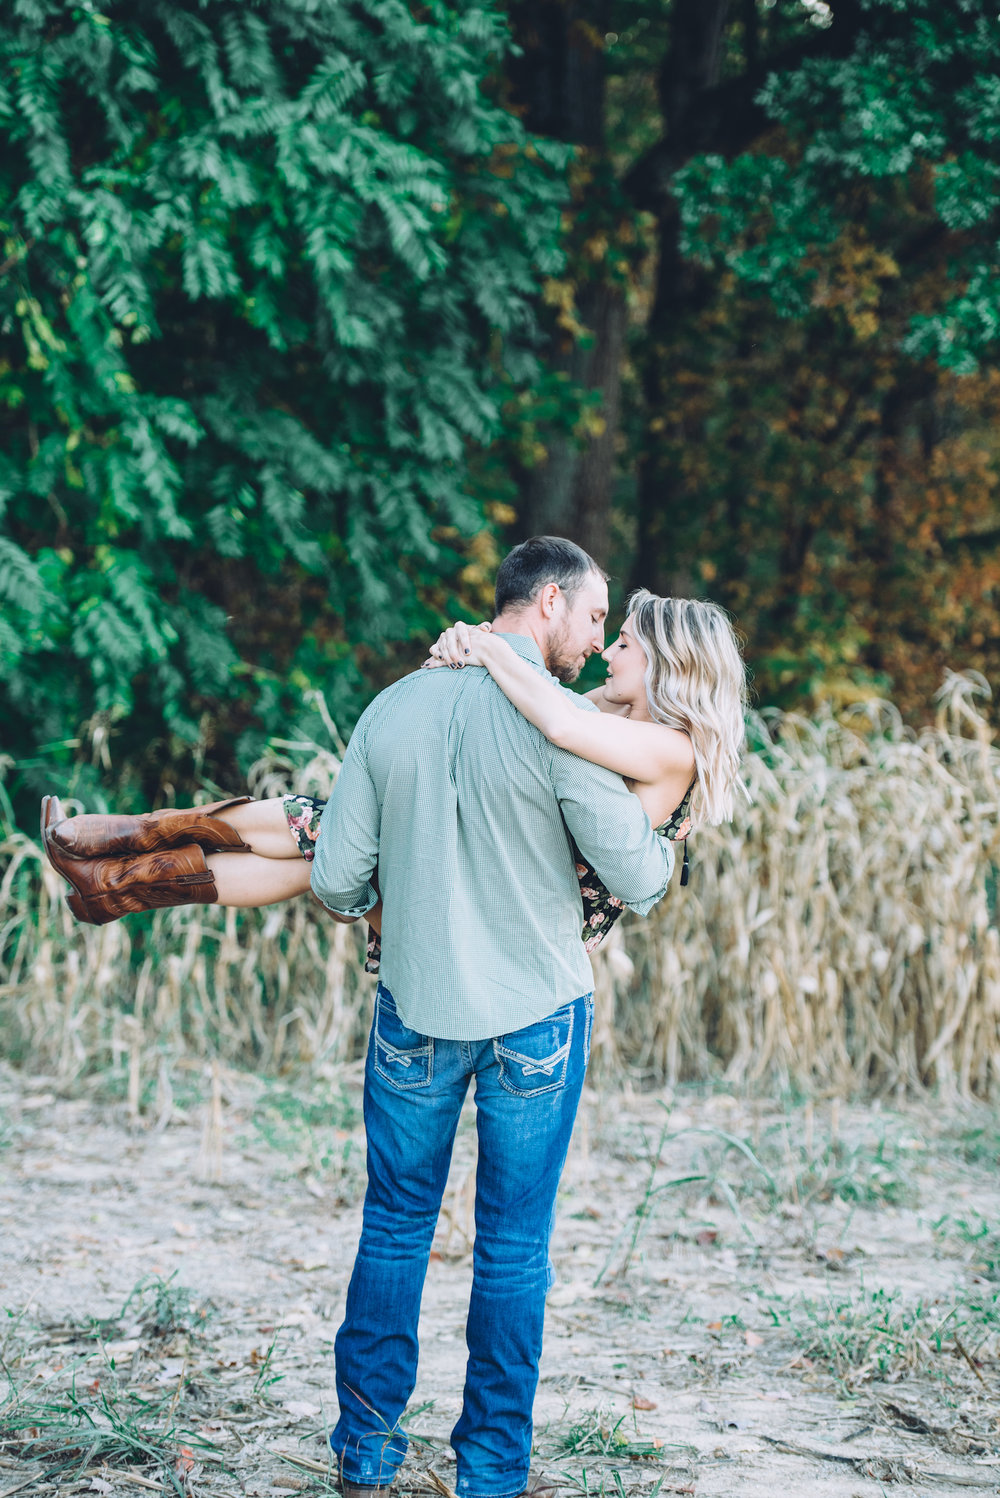 A&M Cunningham Photography Engagement Session-9819.jpg